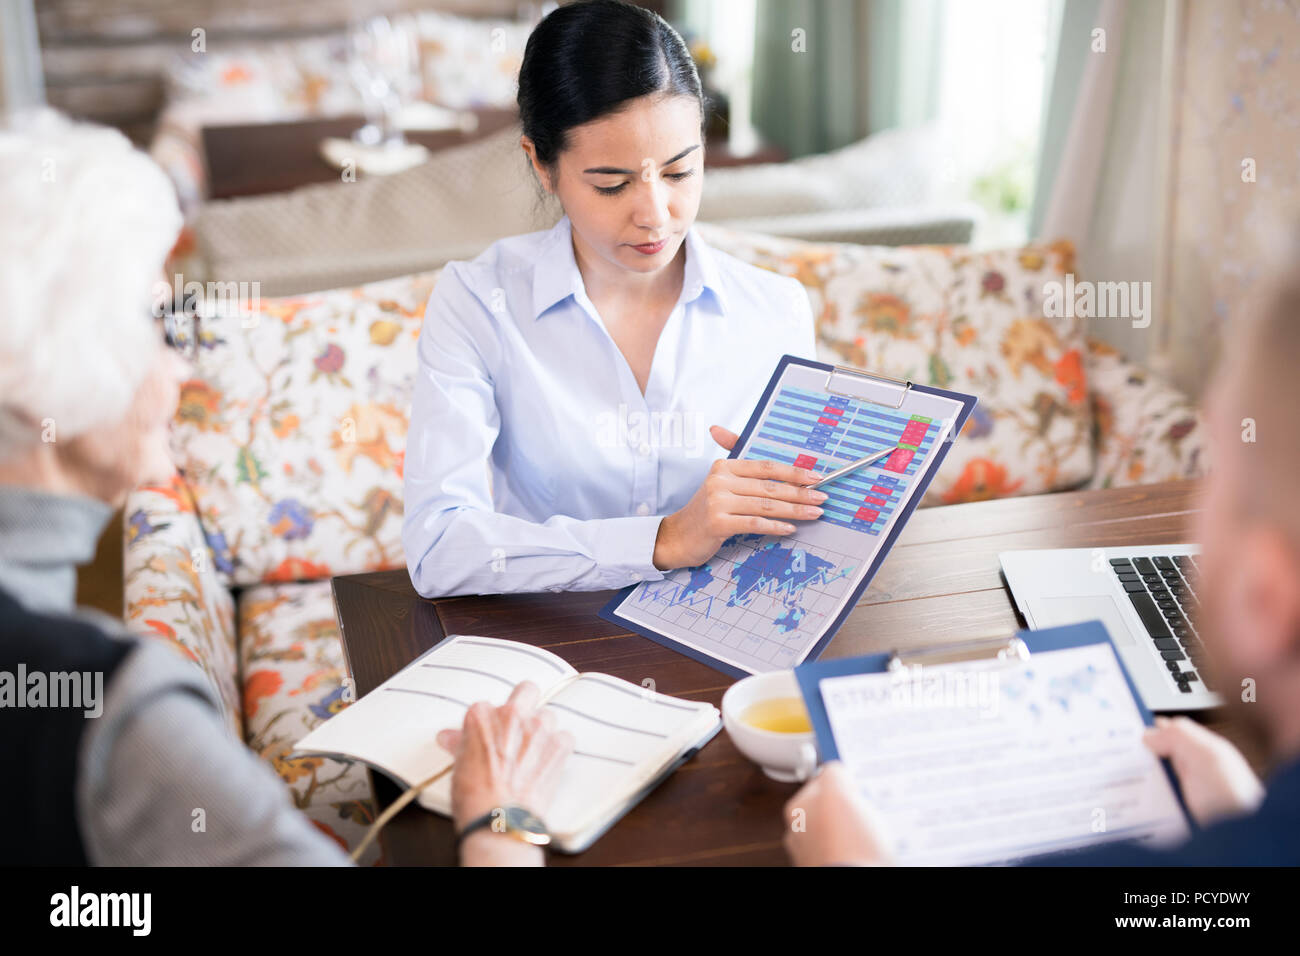 Presentation during a meeting at cafe - Stock Image